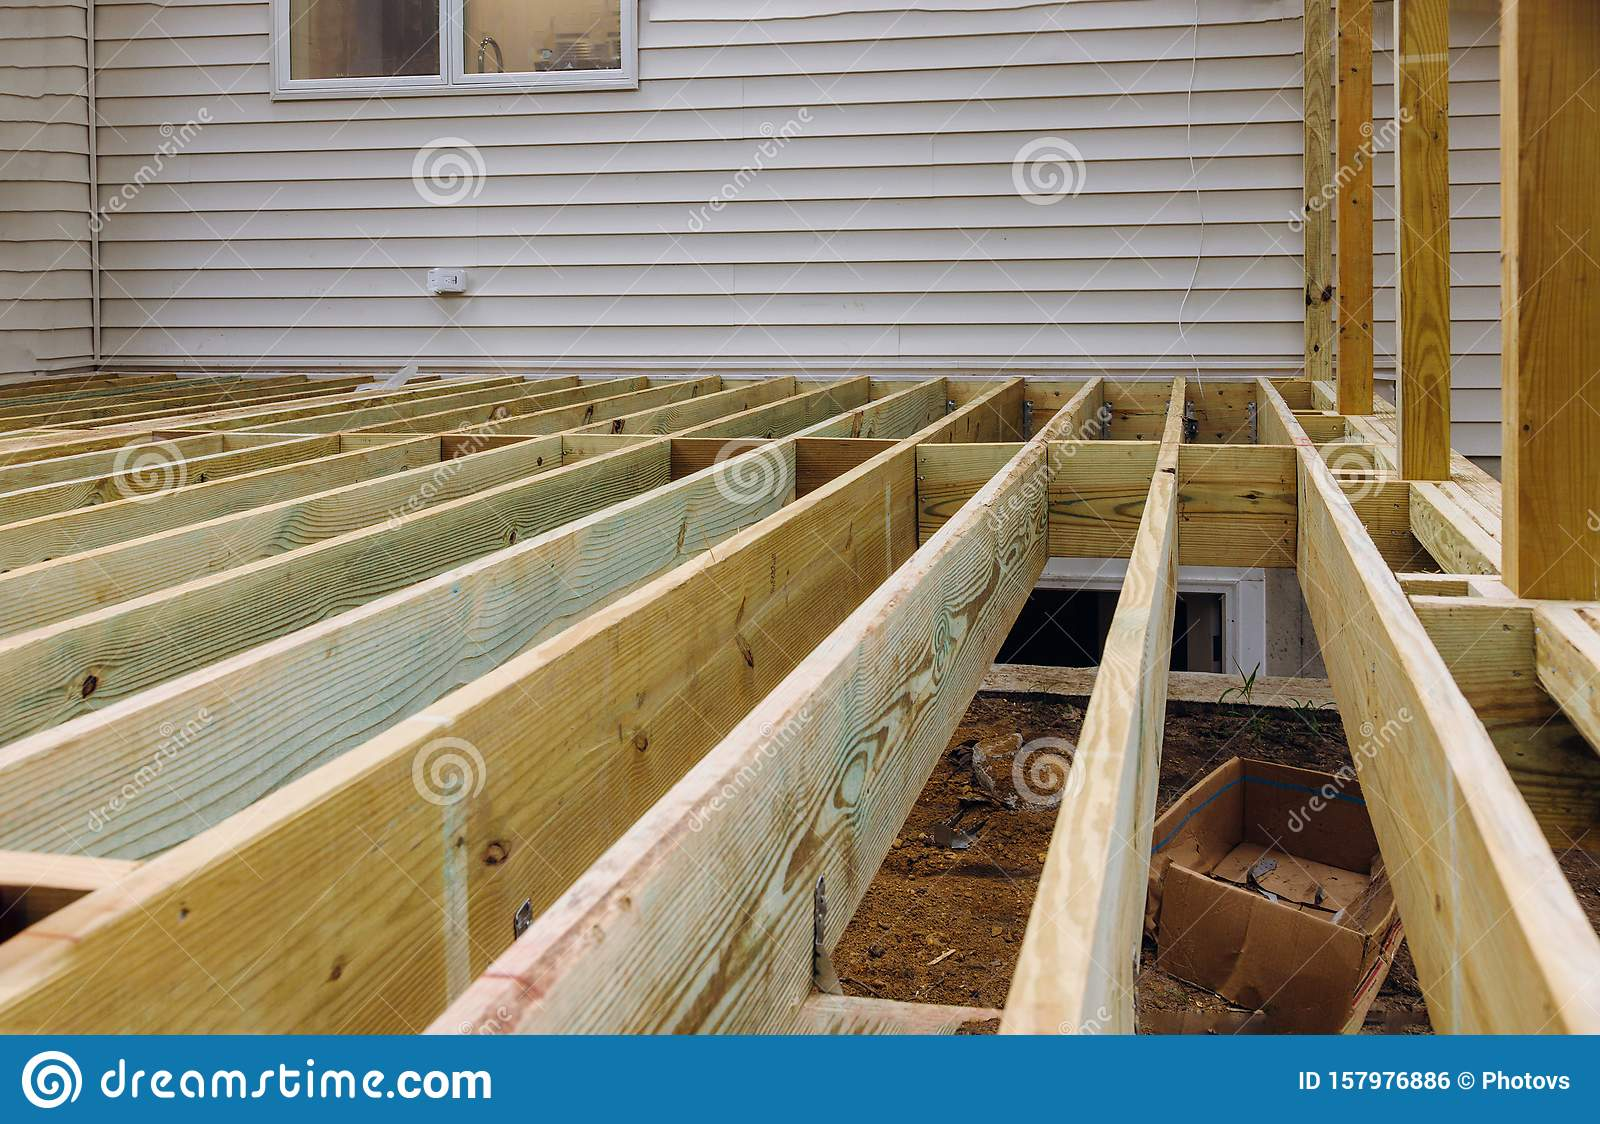 https www dreamstime com installing deck patio construction boards above ground porch floorboard installation woodwork terrace carpentry timber wooden image157976886